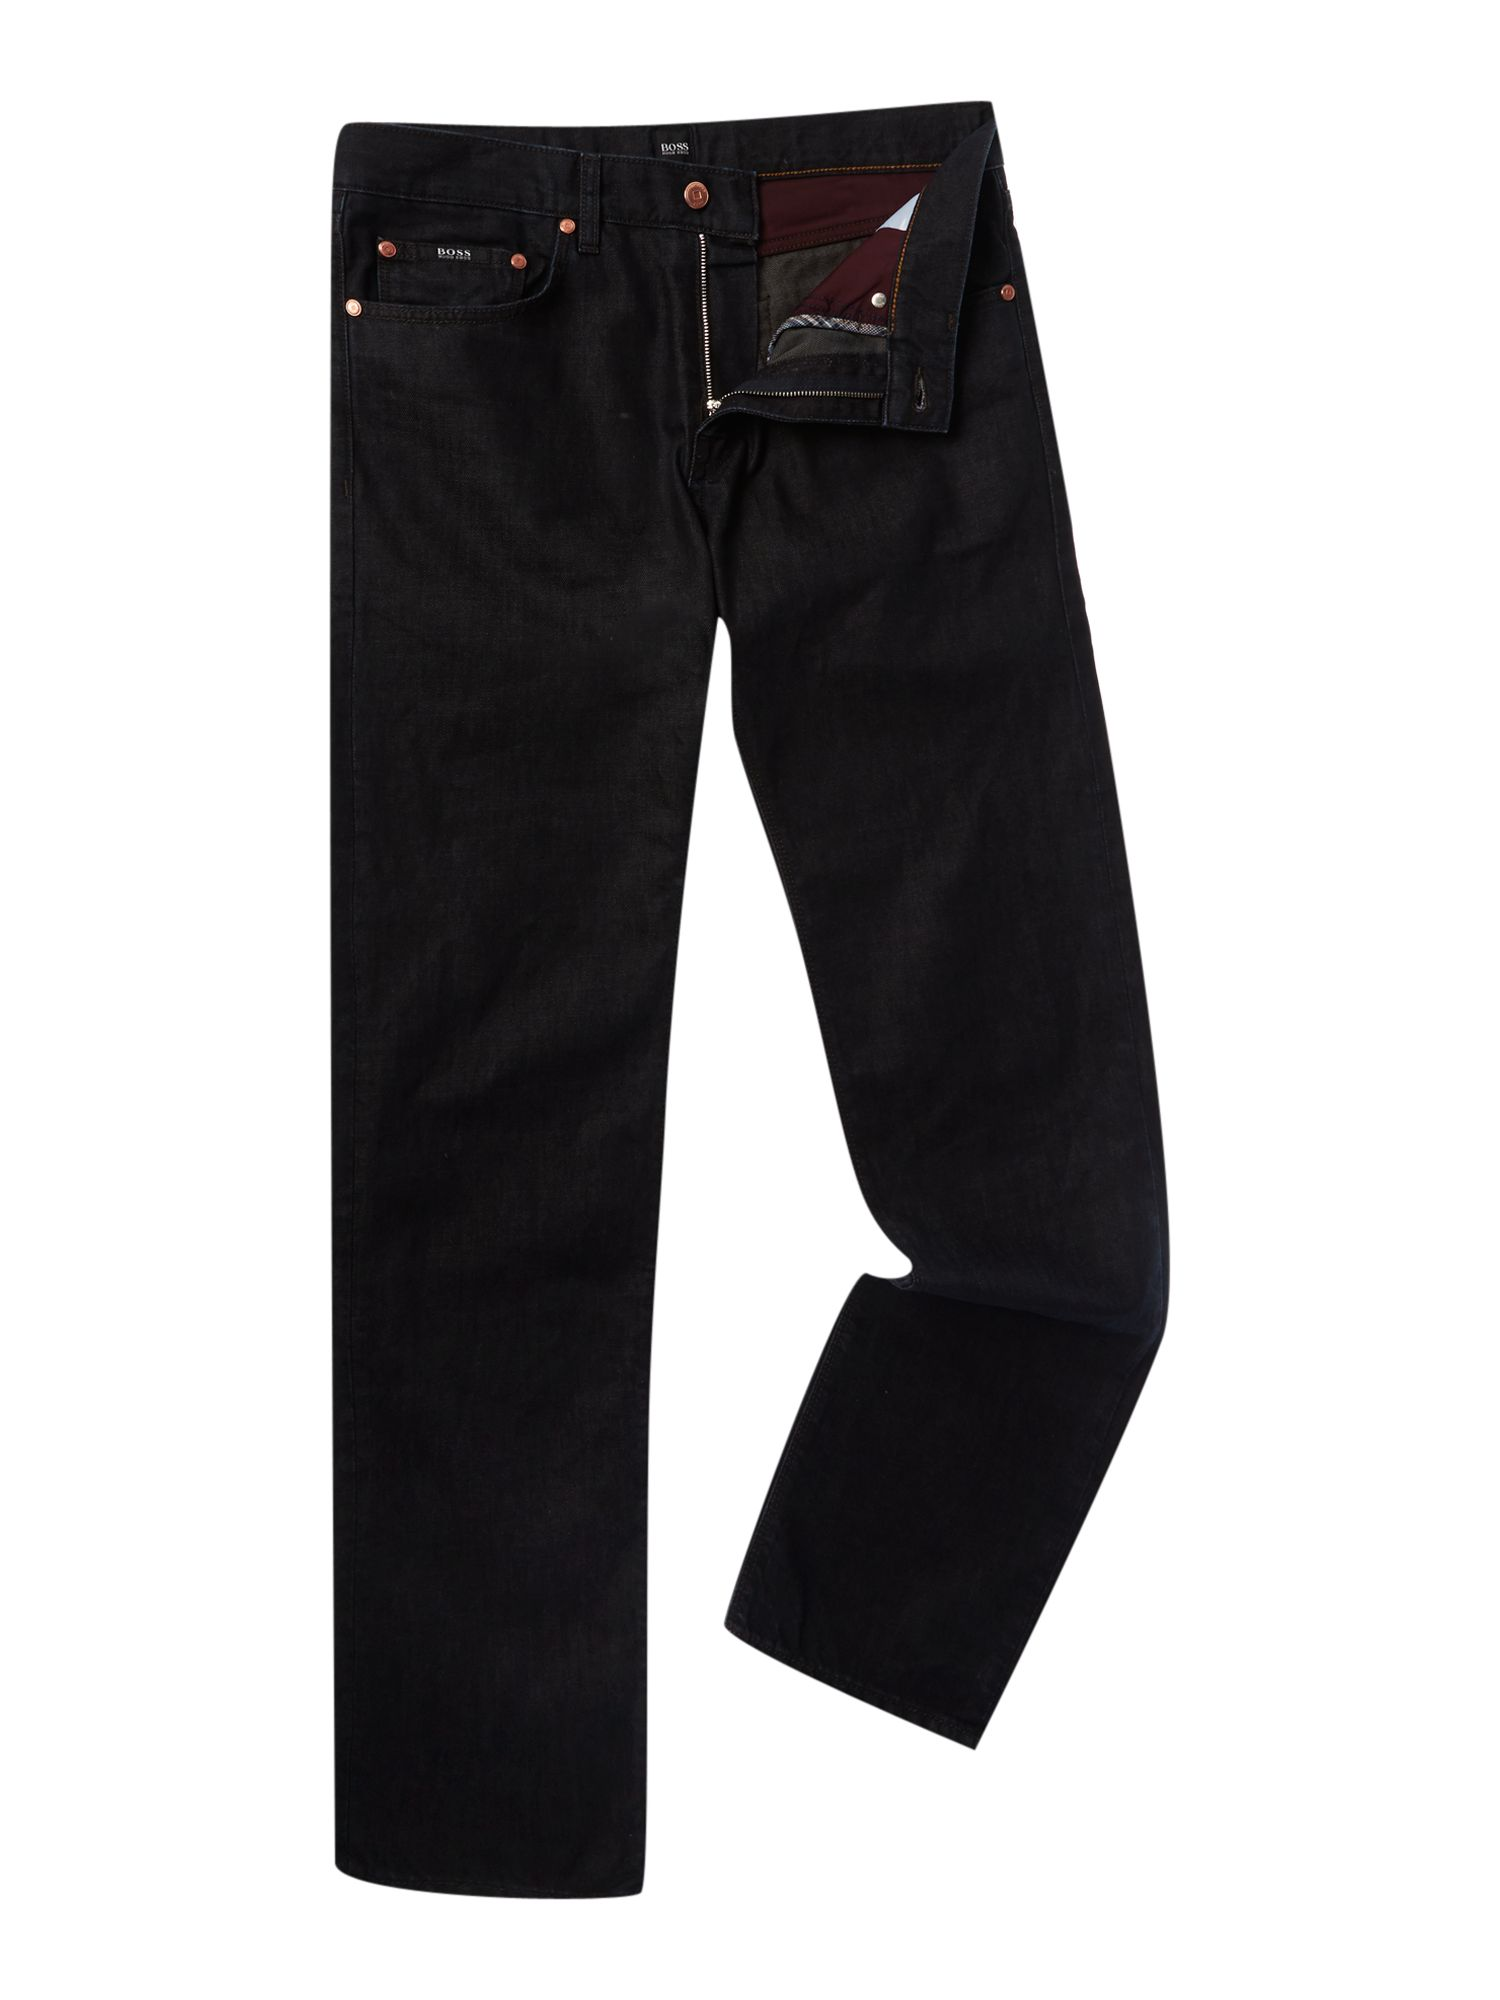 Maine regular straight dark rinse wash jean